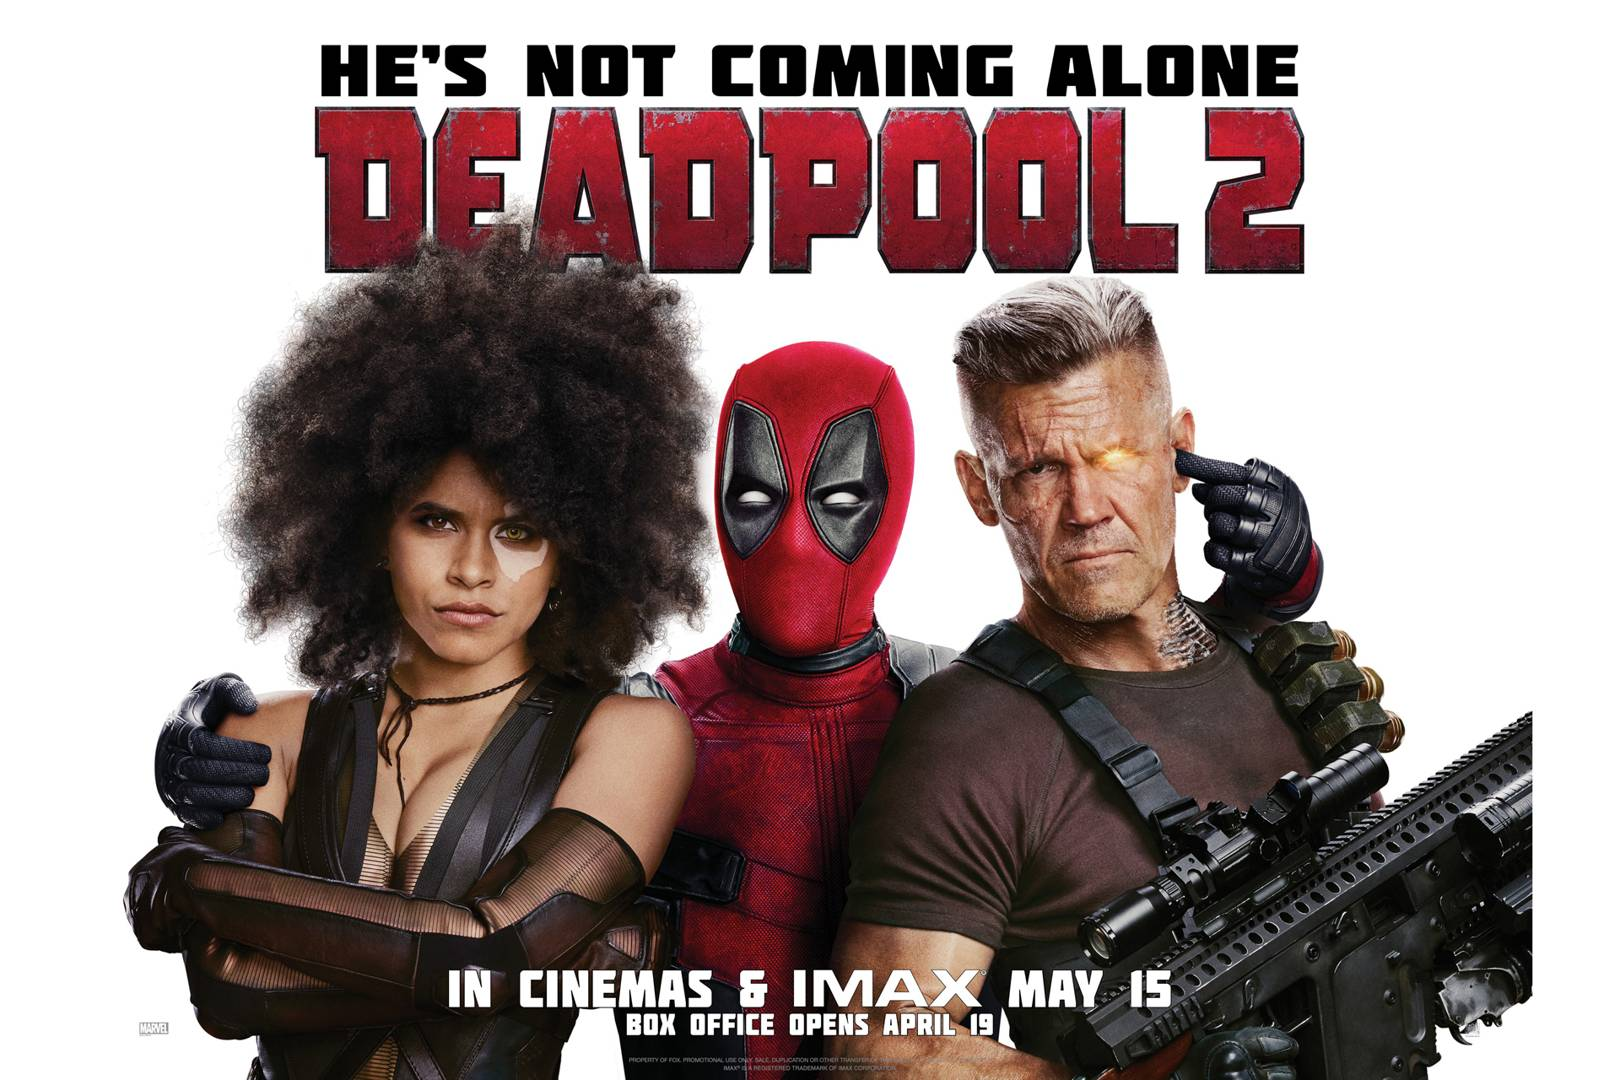 Notes On A Film: Deadpool 2